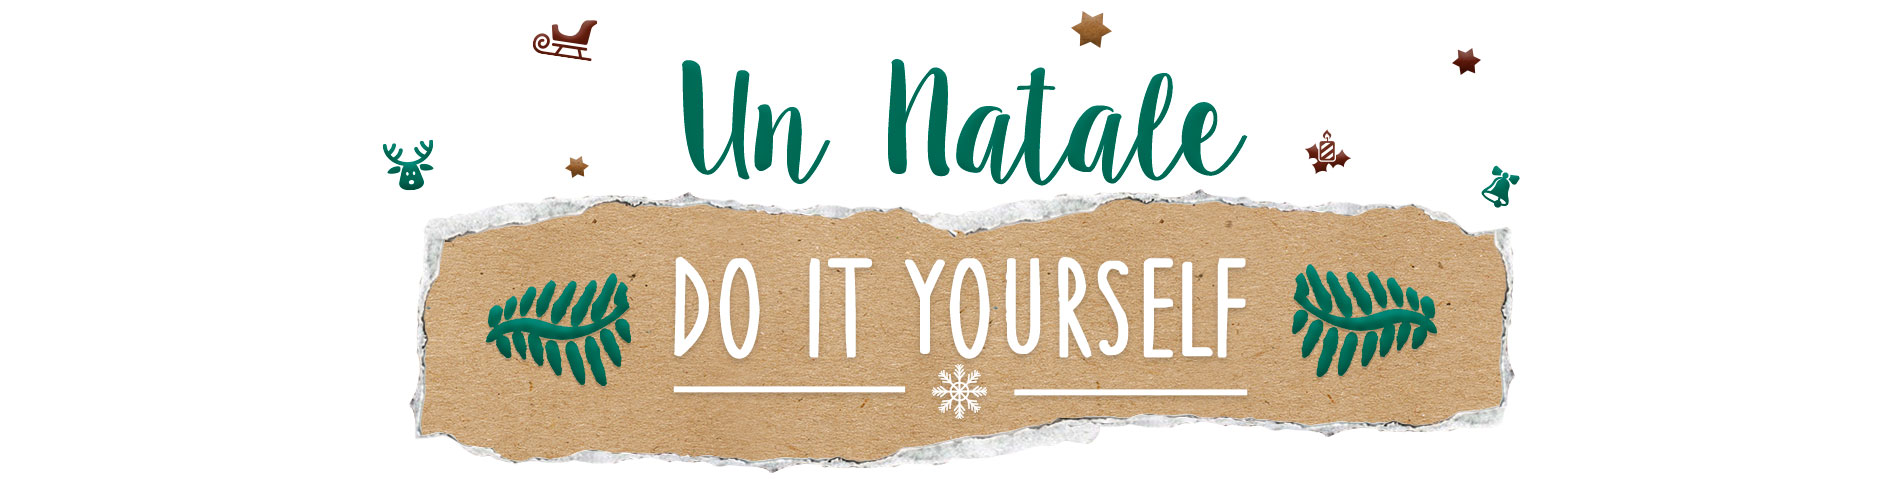 un natale do it yourself top banner